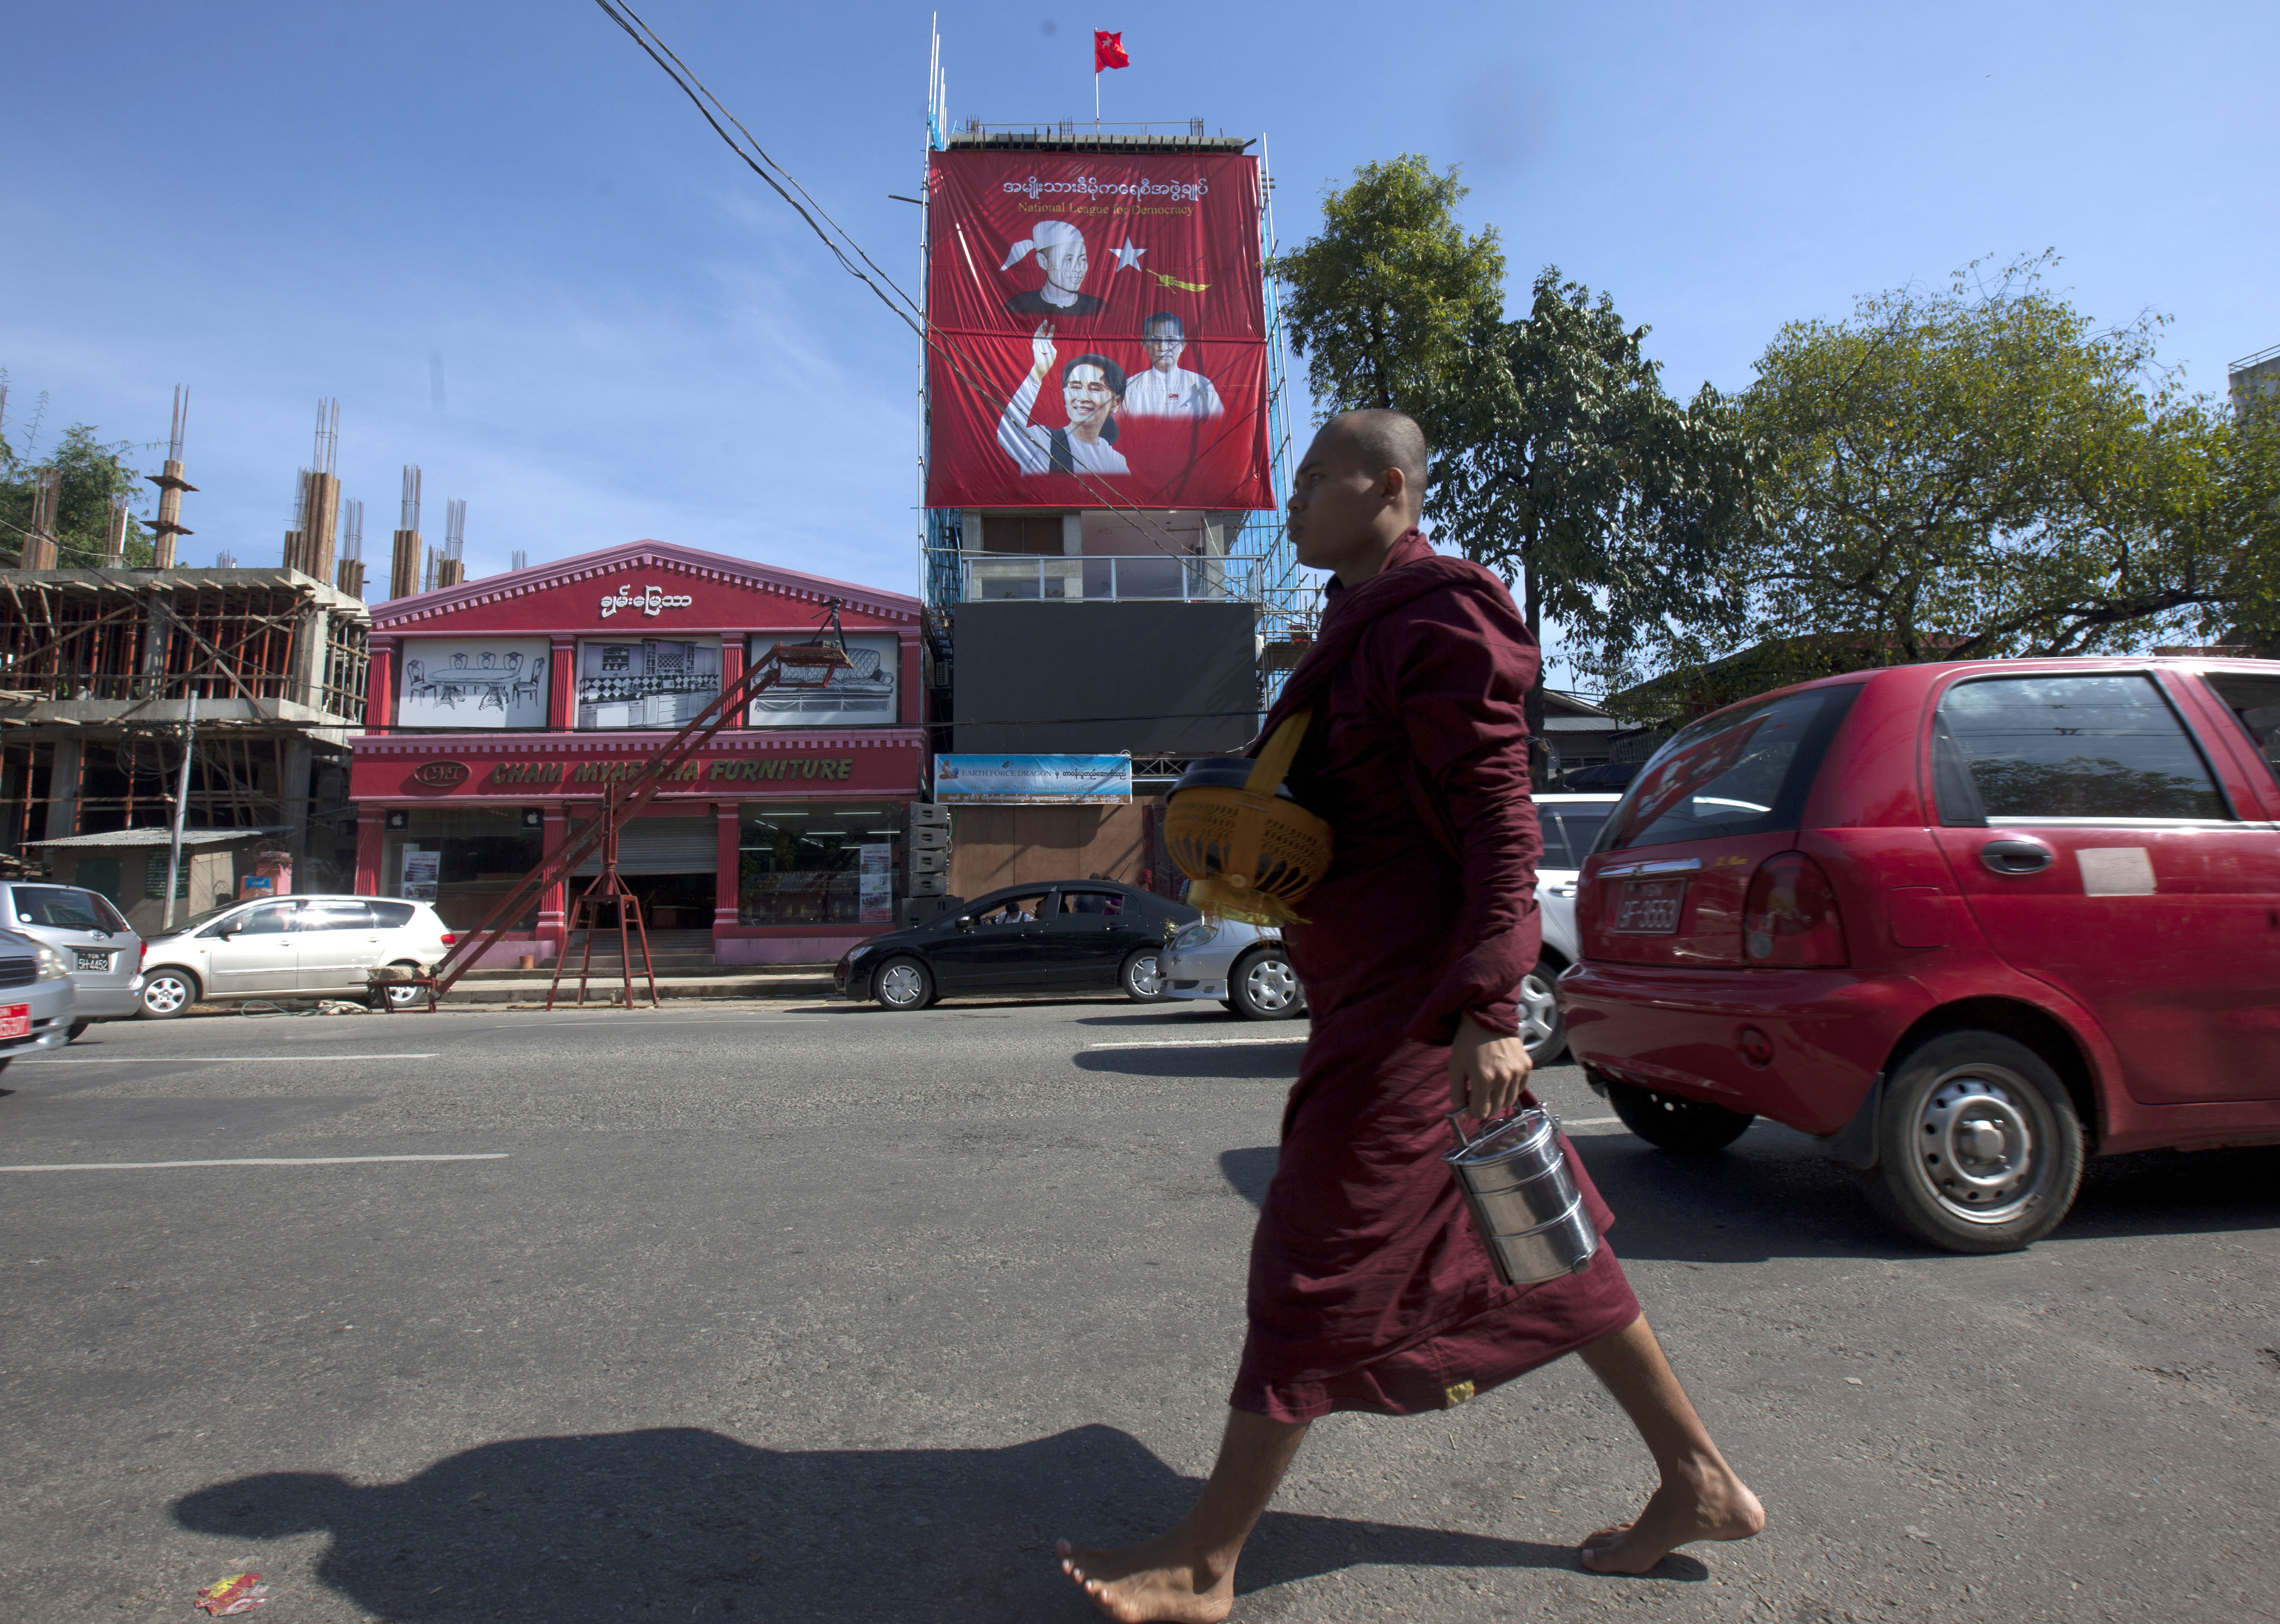 A Buddhist monk walks on a road near the headquarters of Myanmar opposition leader Aung San Suu Kyi's National League for Democracy party while collecting morning alms Monday, Nov. 9, 2015, in Yangon, Myanmar. (AP Photo/Khin Maung Win)